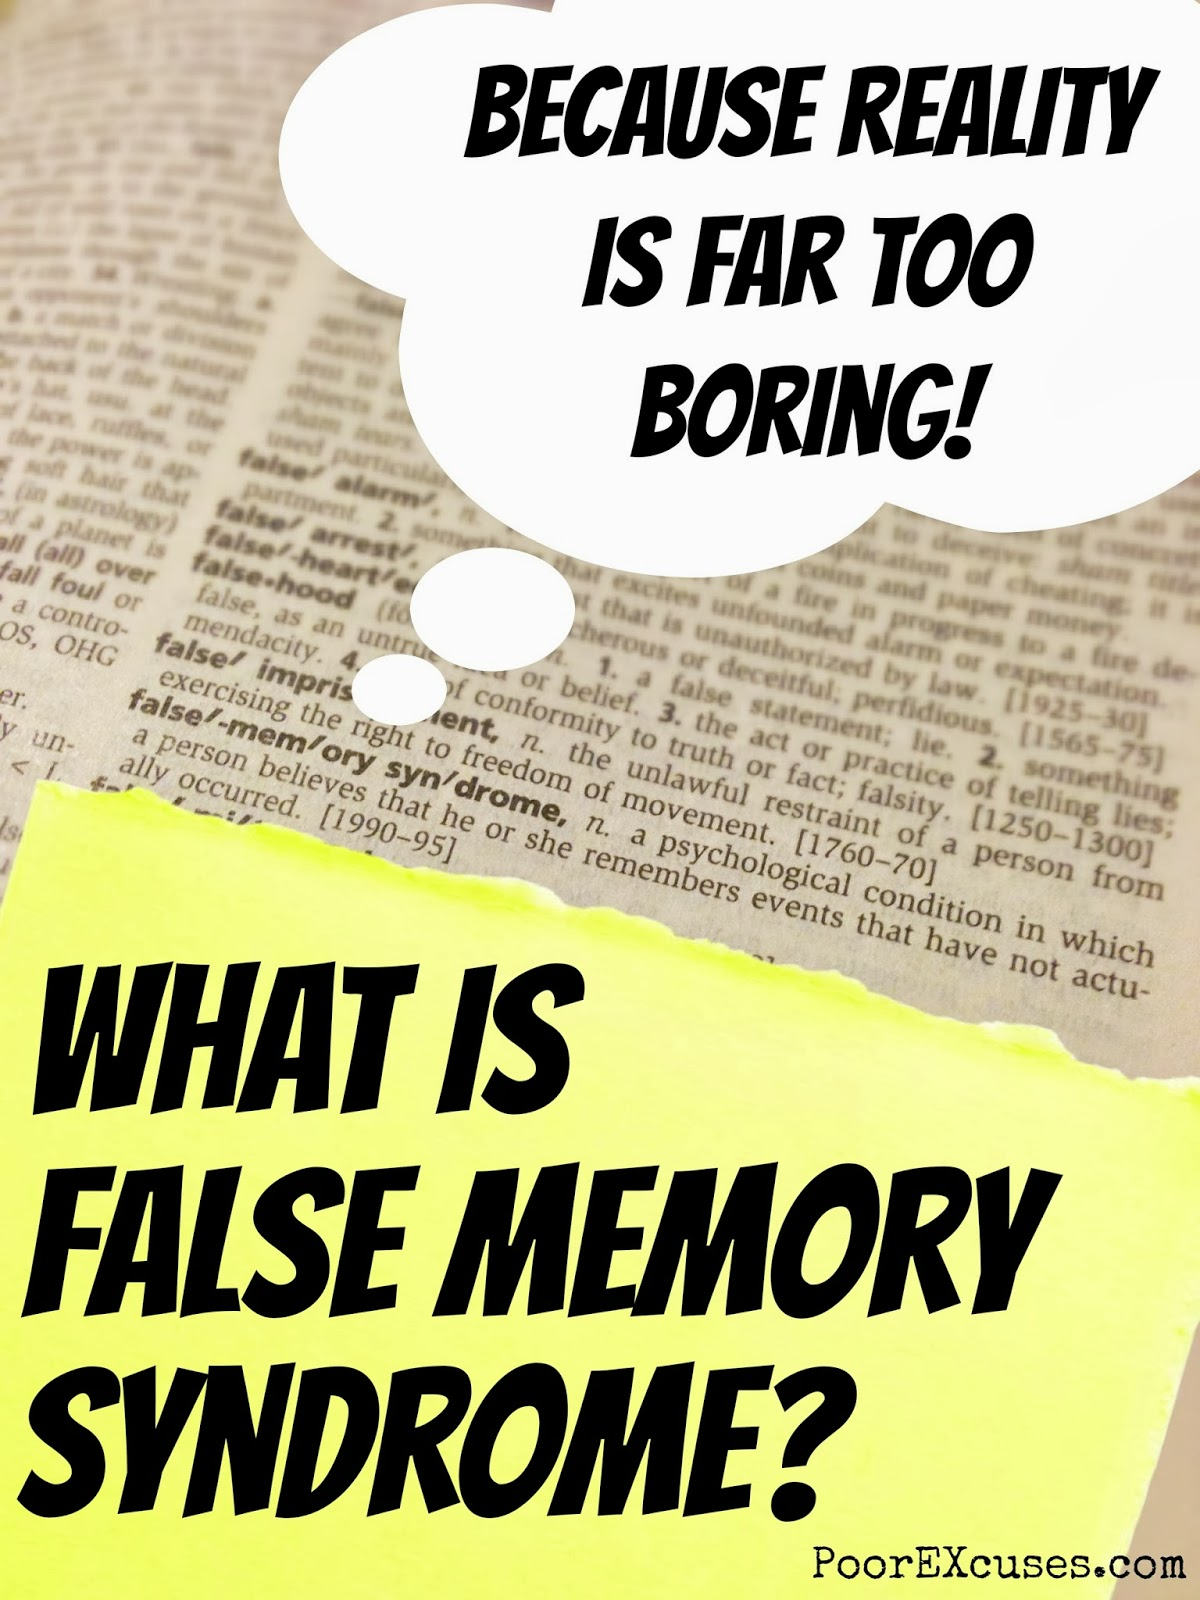 an analysis of the false memory syndrome False memory syndrome (fms) is a condition in which a person's identity and interpersonal relationships are centered on a memory of traumatic experience which is actually false, but in which the person is strongly convinced  when considering fms, it's best to remember that all individuals are prone to creating false memories.